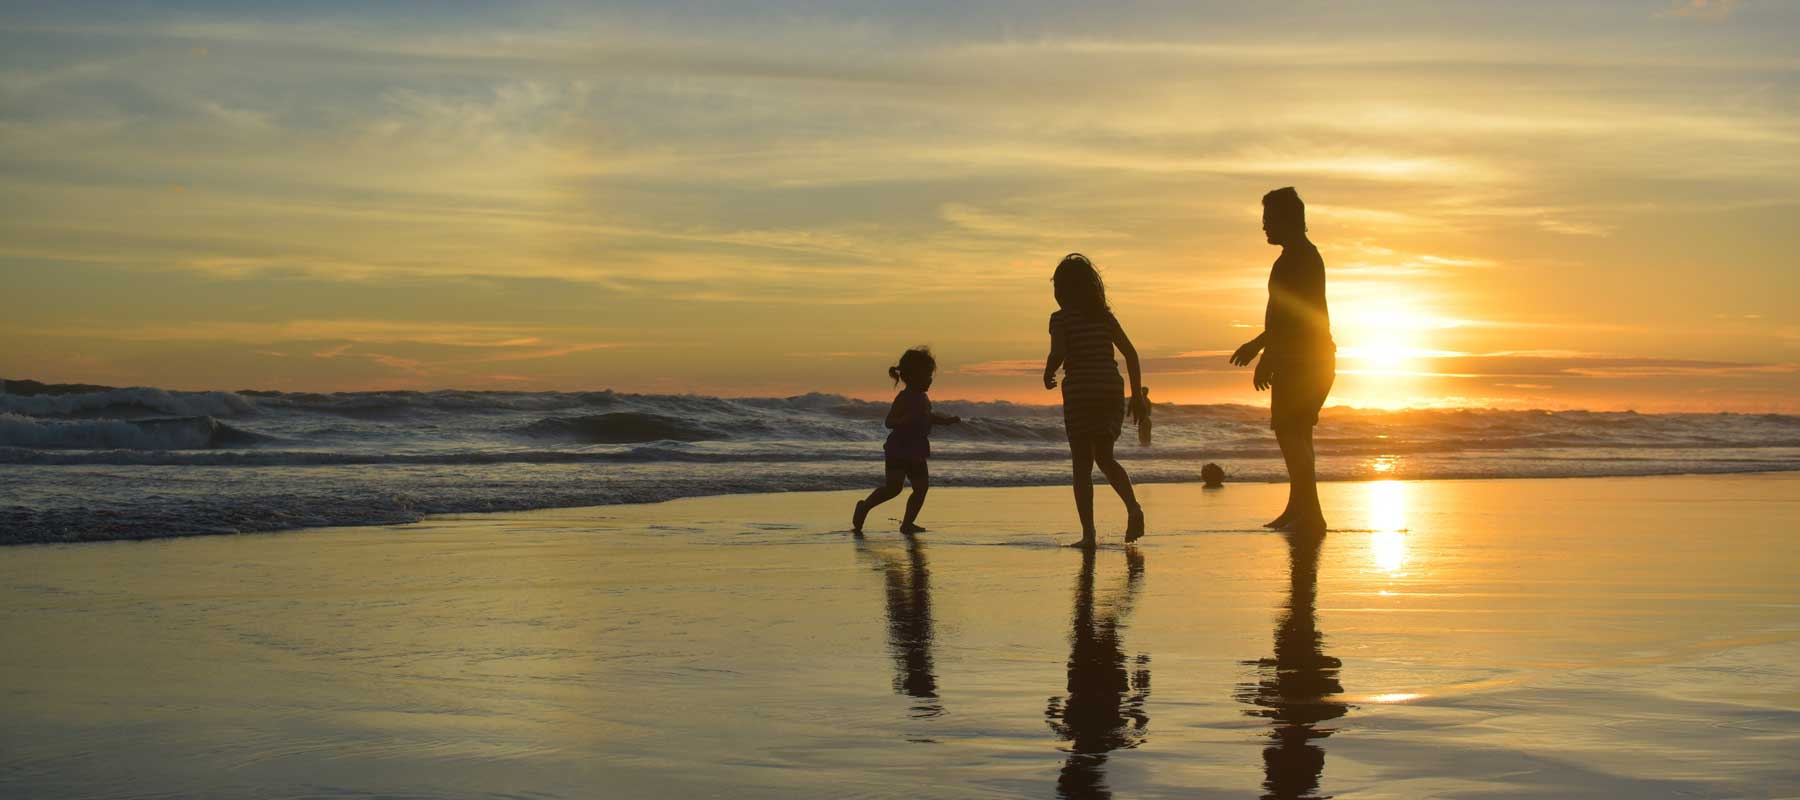 silhouetted family playing on beach at sunset